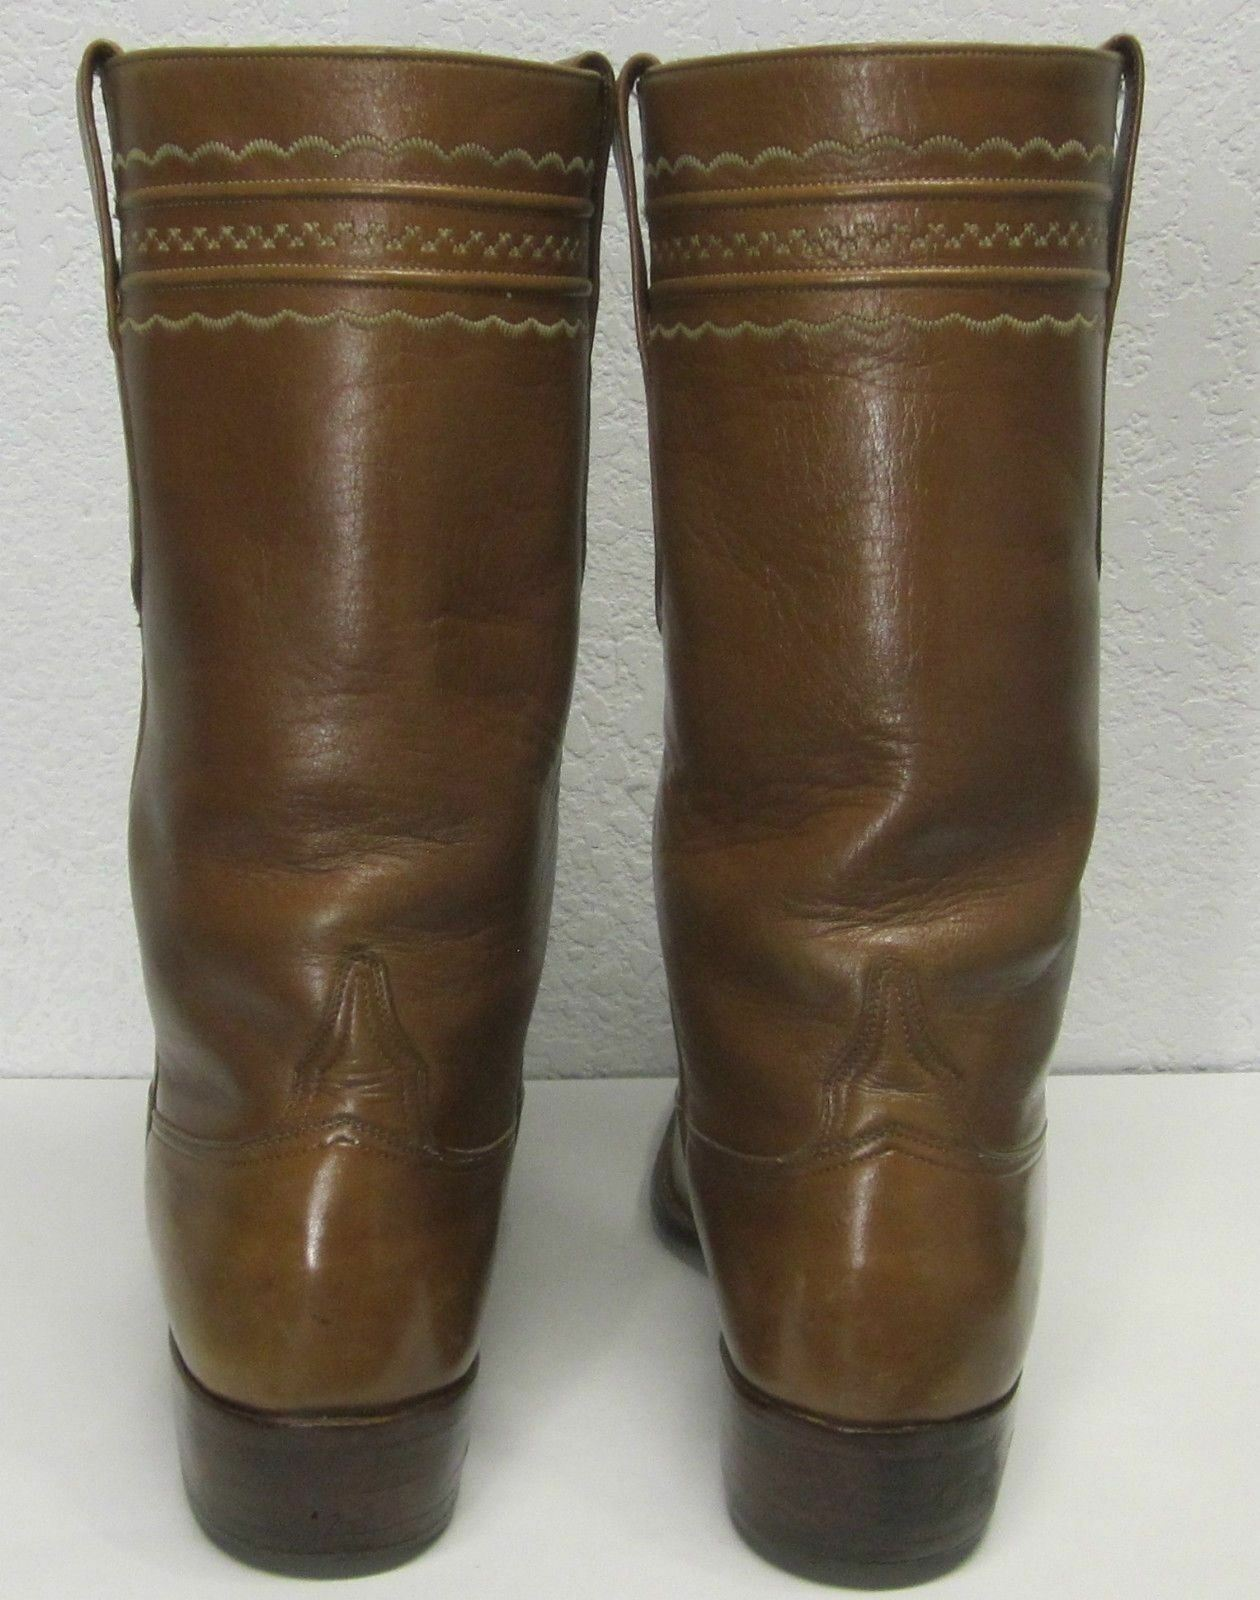 GENUINE LUCCHESE QUALITY 77846 - 2L510 WOMEN'S (9.5 B) CAMEL BROWN COWBOY BOOTS